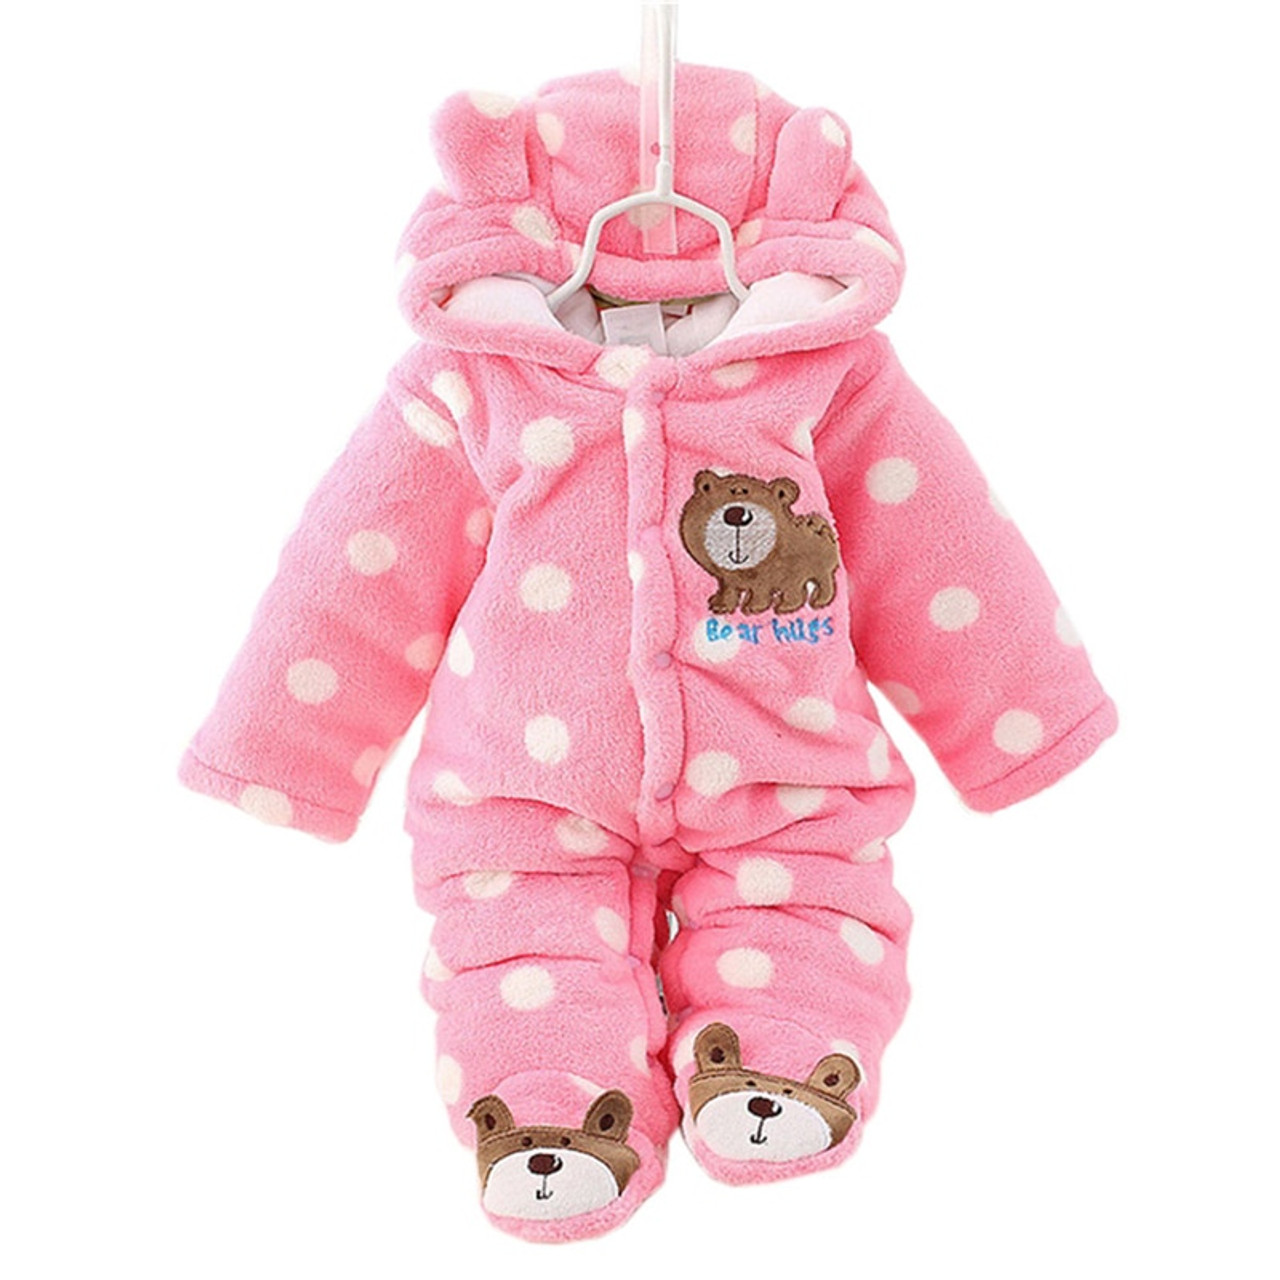 d4d14f4a355f1 Cotton Baby Rompers Winter Baby Boy Clothes 2017 Baby Girl Clothing Sets  Cute Newborn Baby Clothes Roupas Bebe Infant Jumpsuits